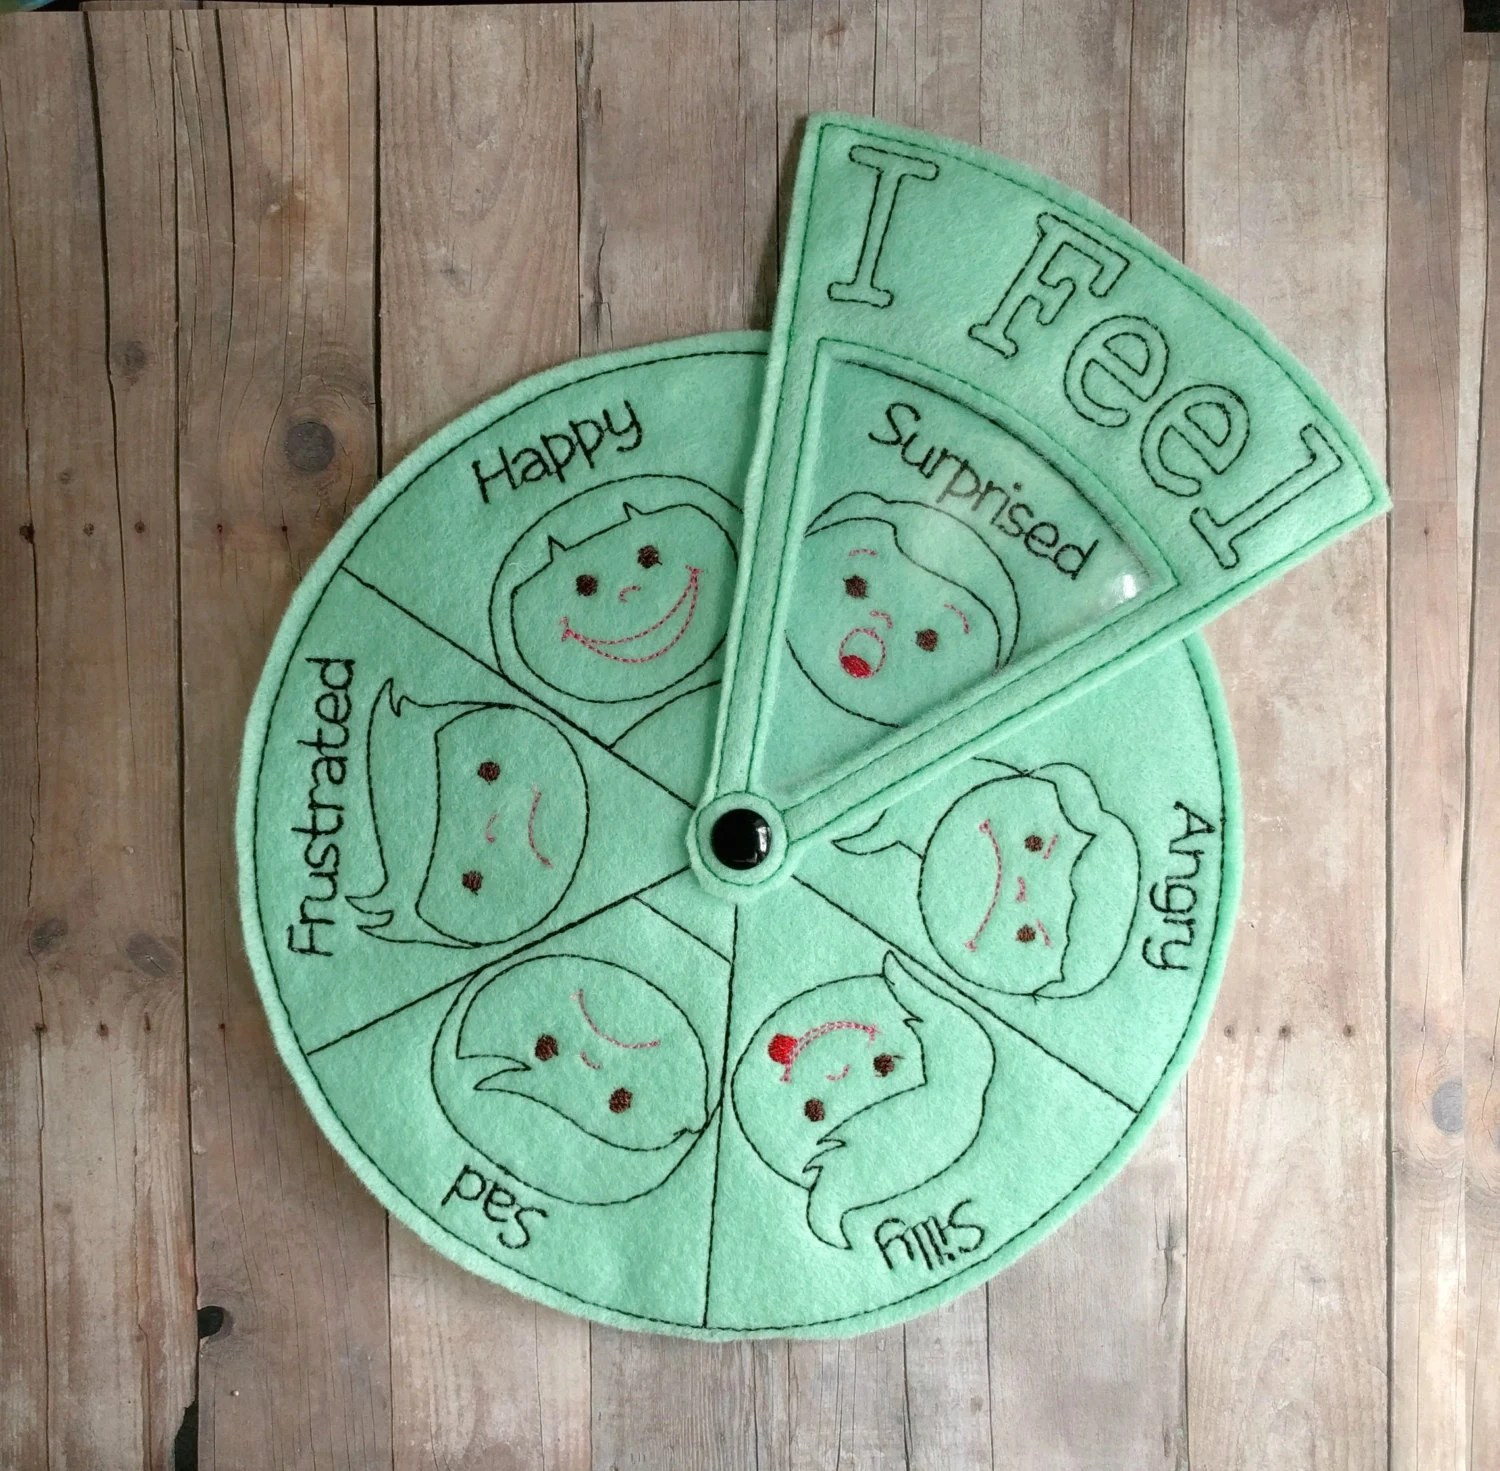 Emotions Wheel Helps Teach Children About Feelings For